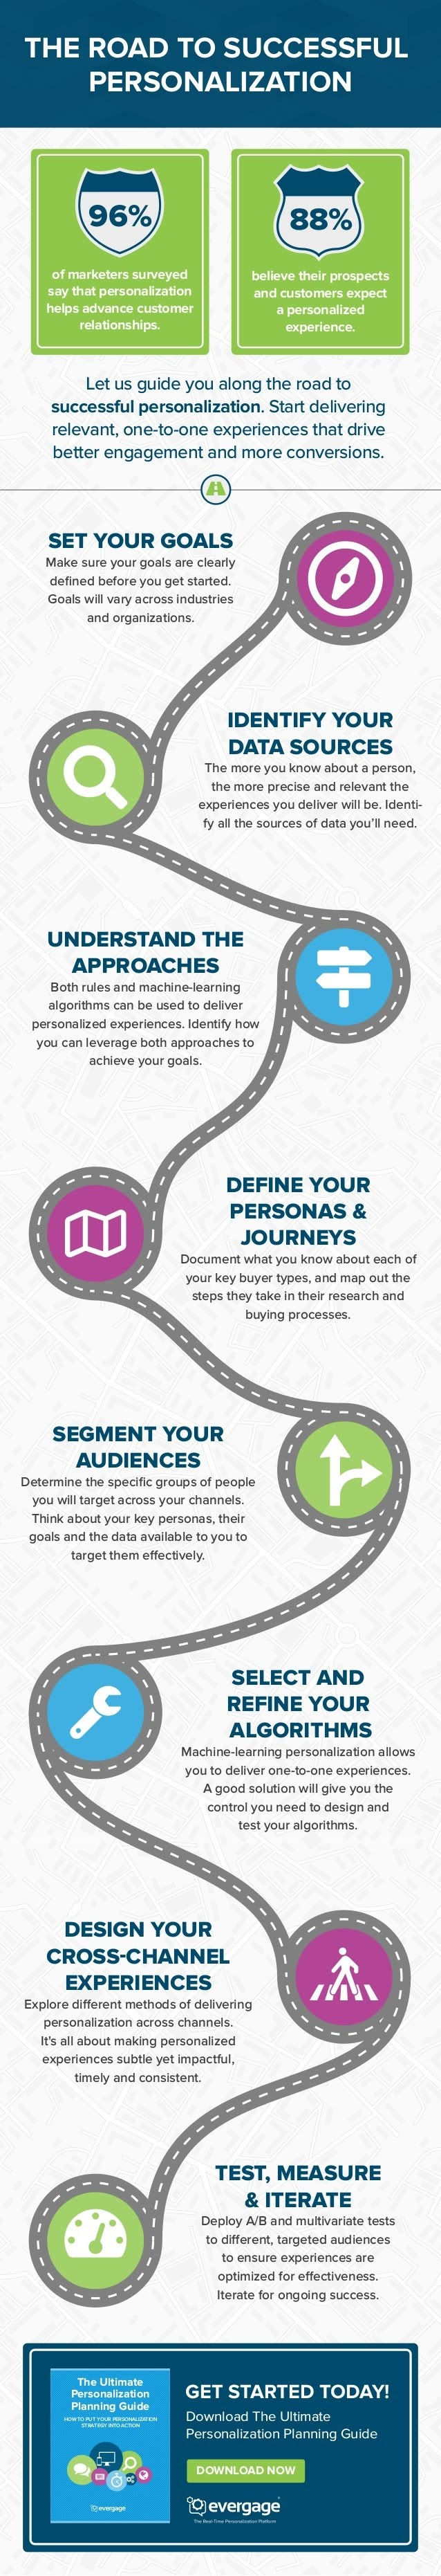 The Road to Successful Personalization #Infographic